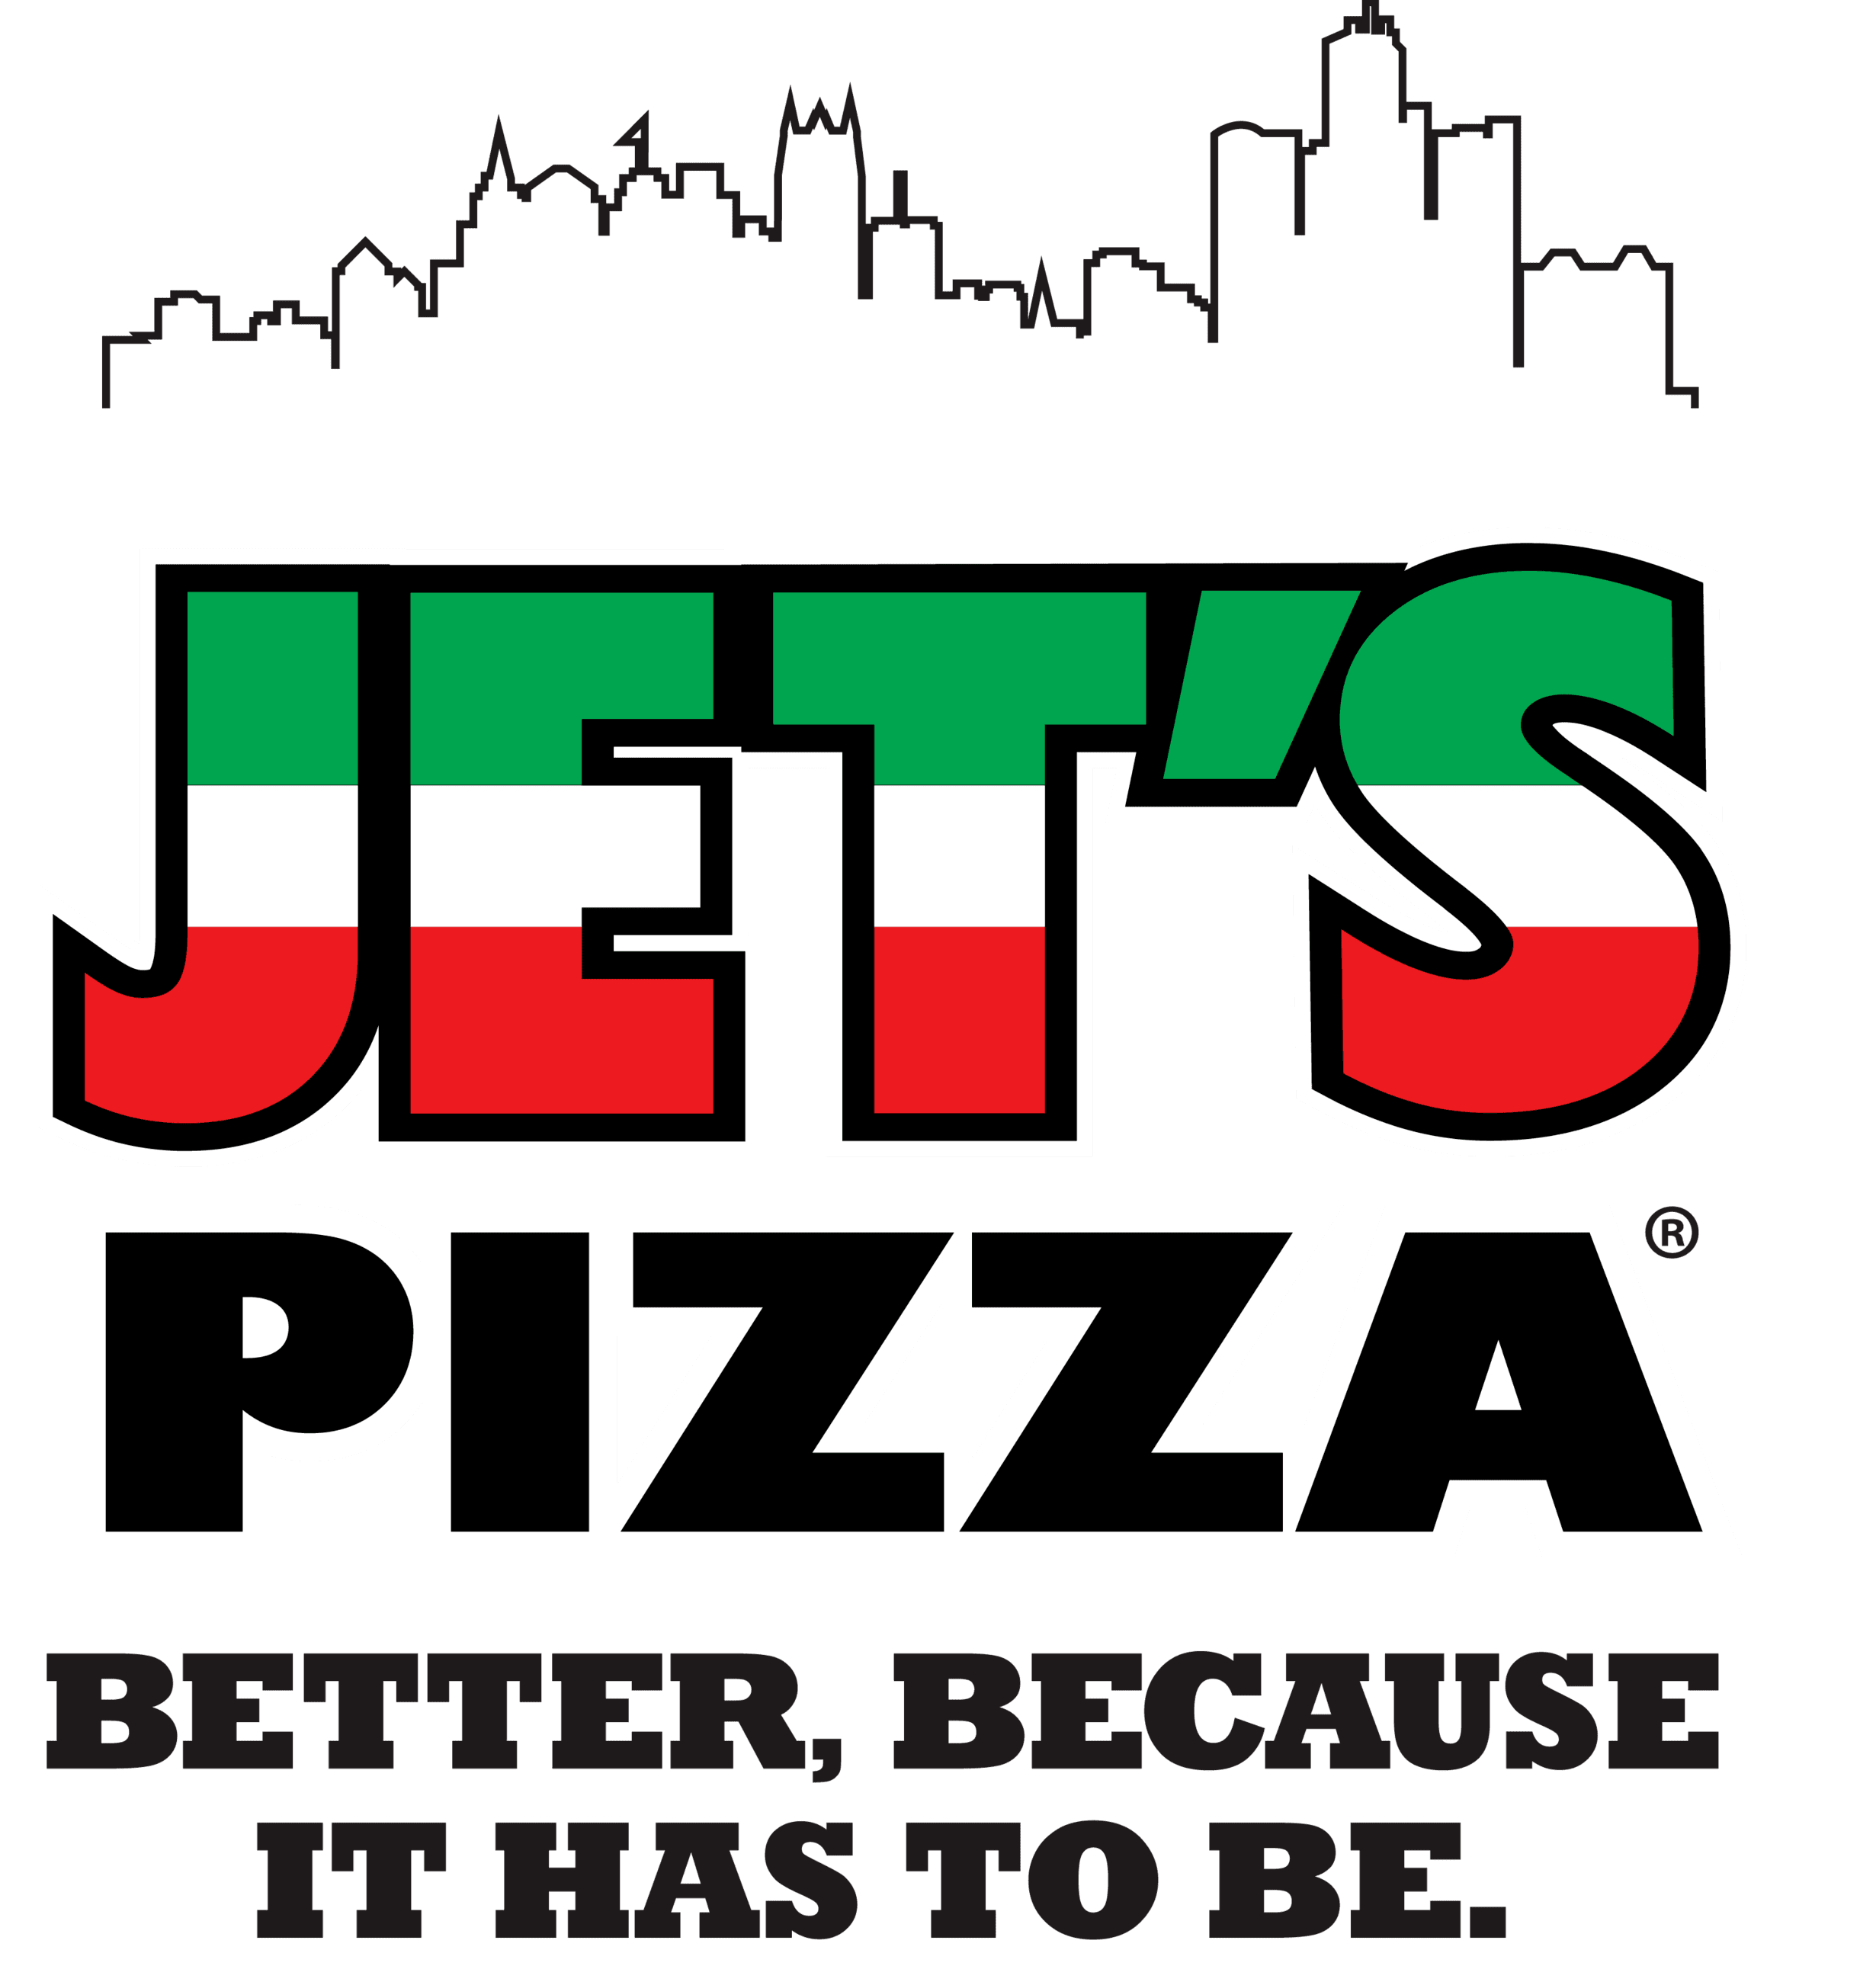 JETS197926_Detroit_Logo-lightbg Opens in new window